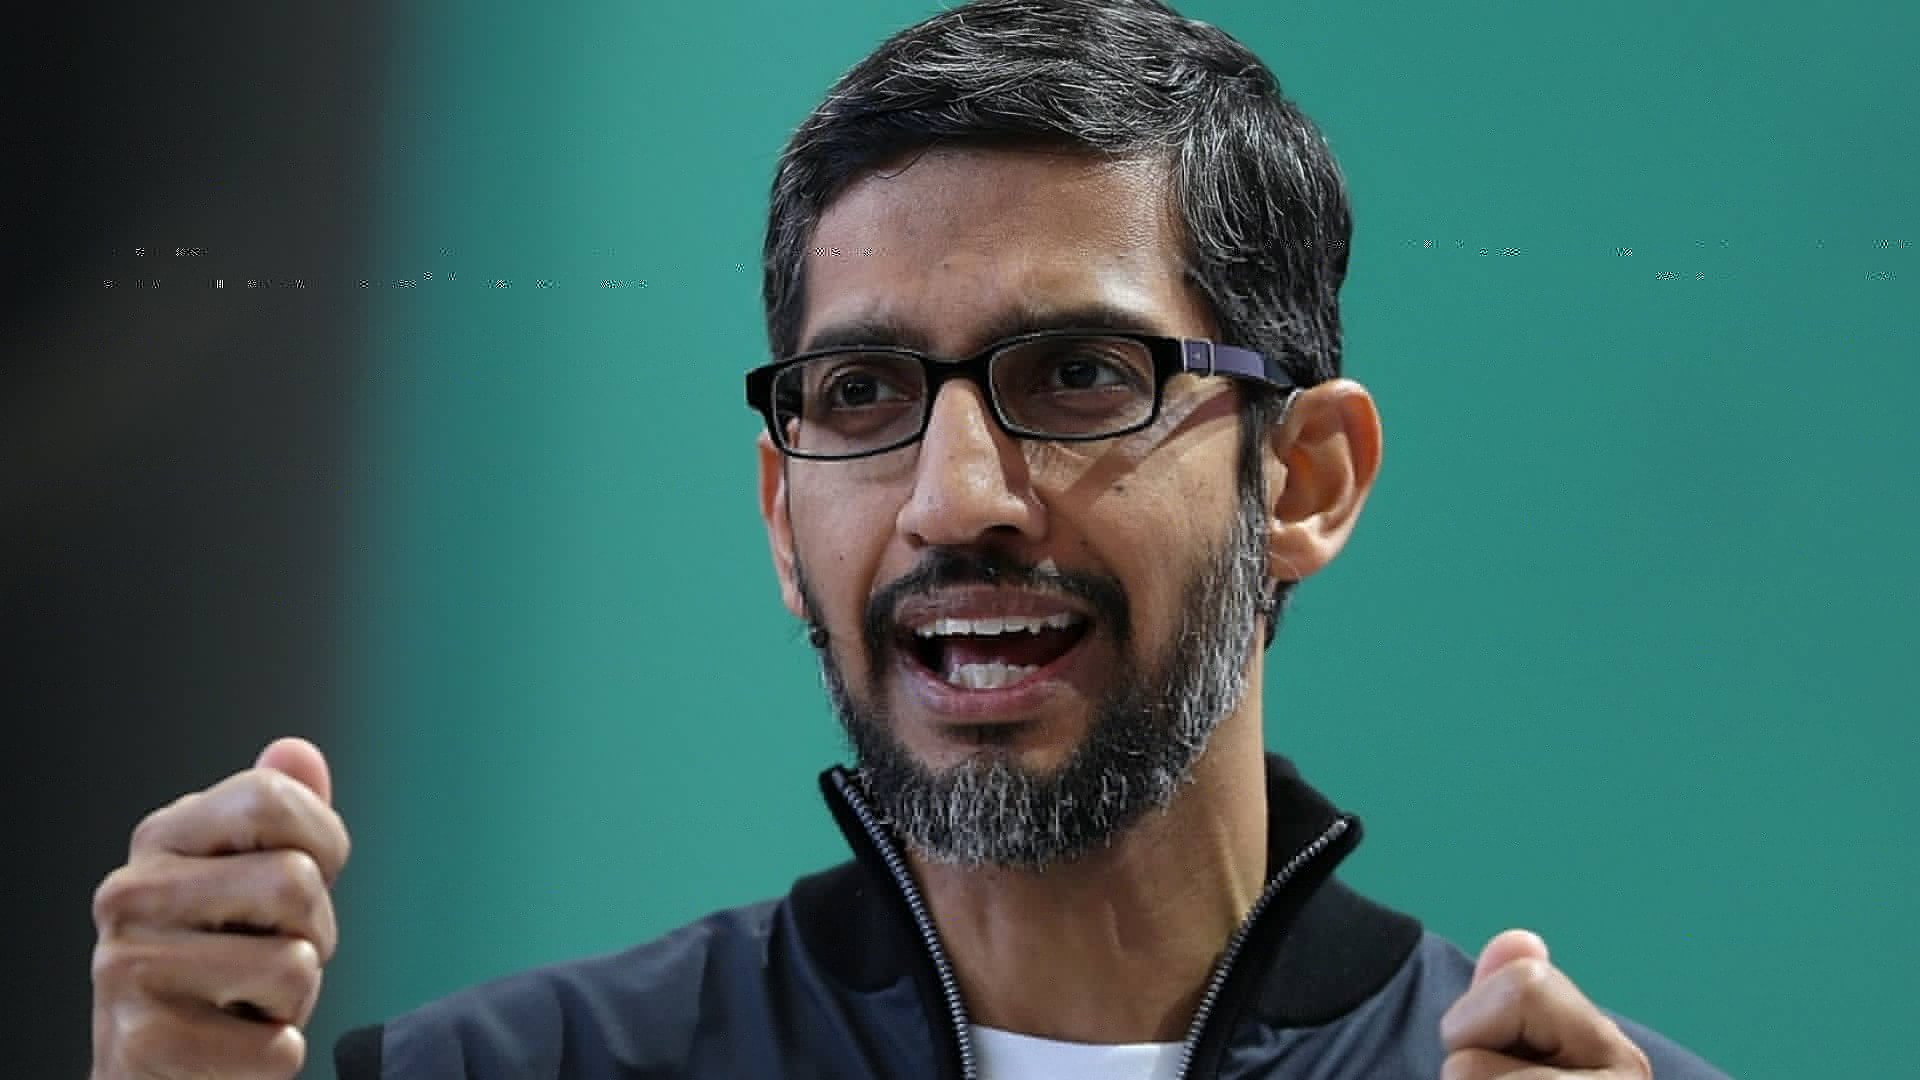 Google CEO Sundar Pichai delivers the keynote address at the Google I/O 2017 Conference.